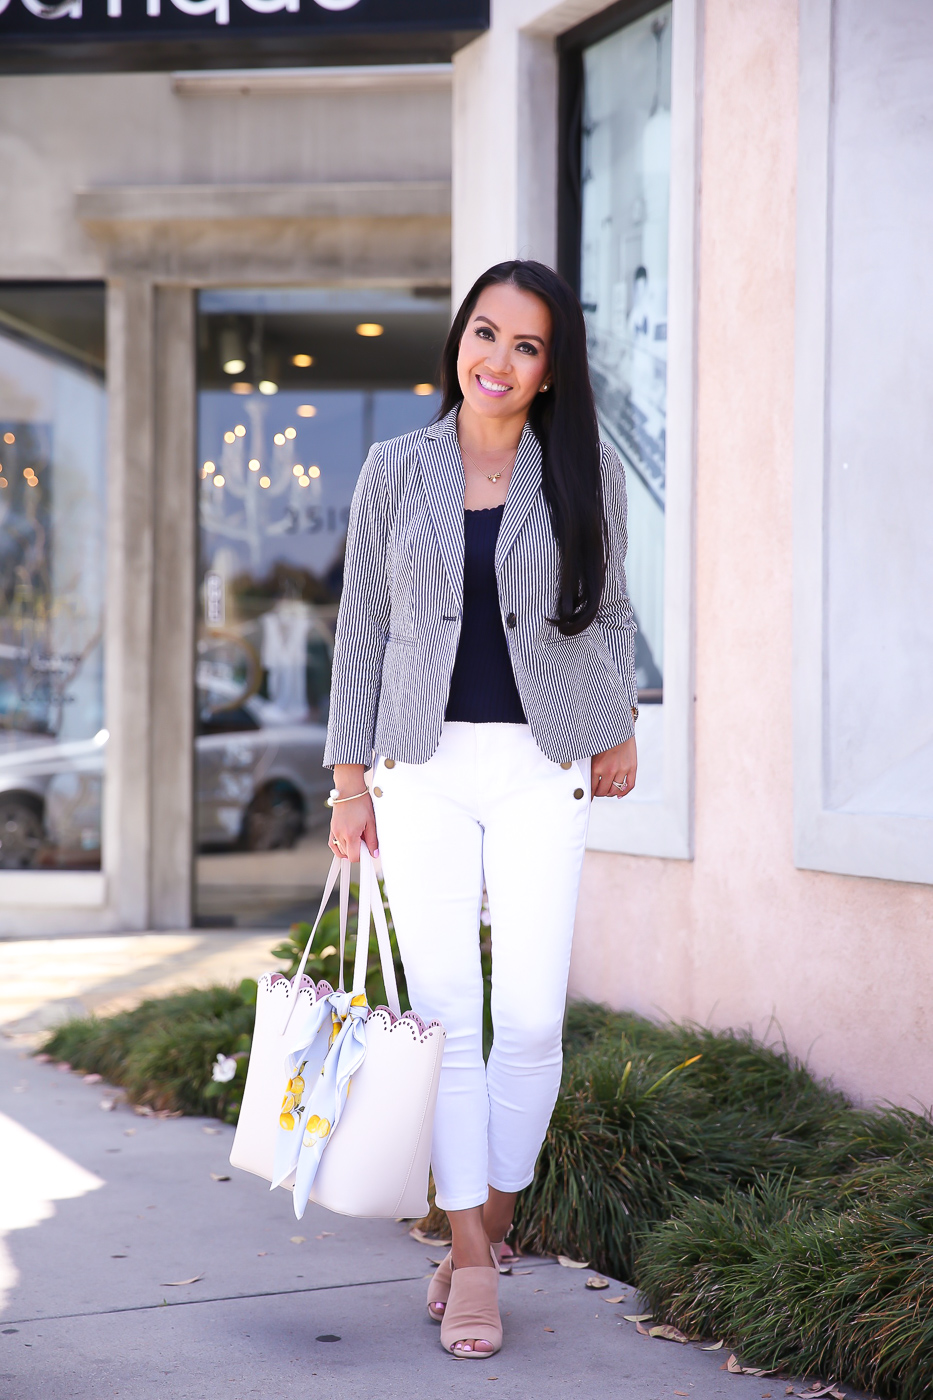 ann taylor sailor white jeans seersucker blazer scalloped tote business casual outfit